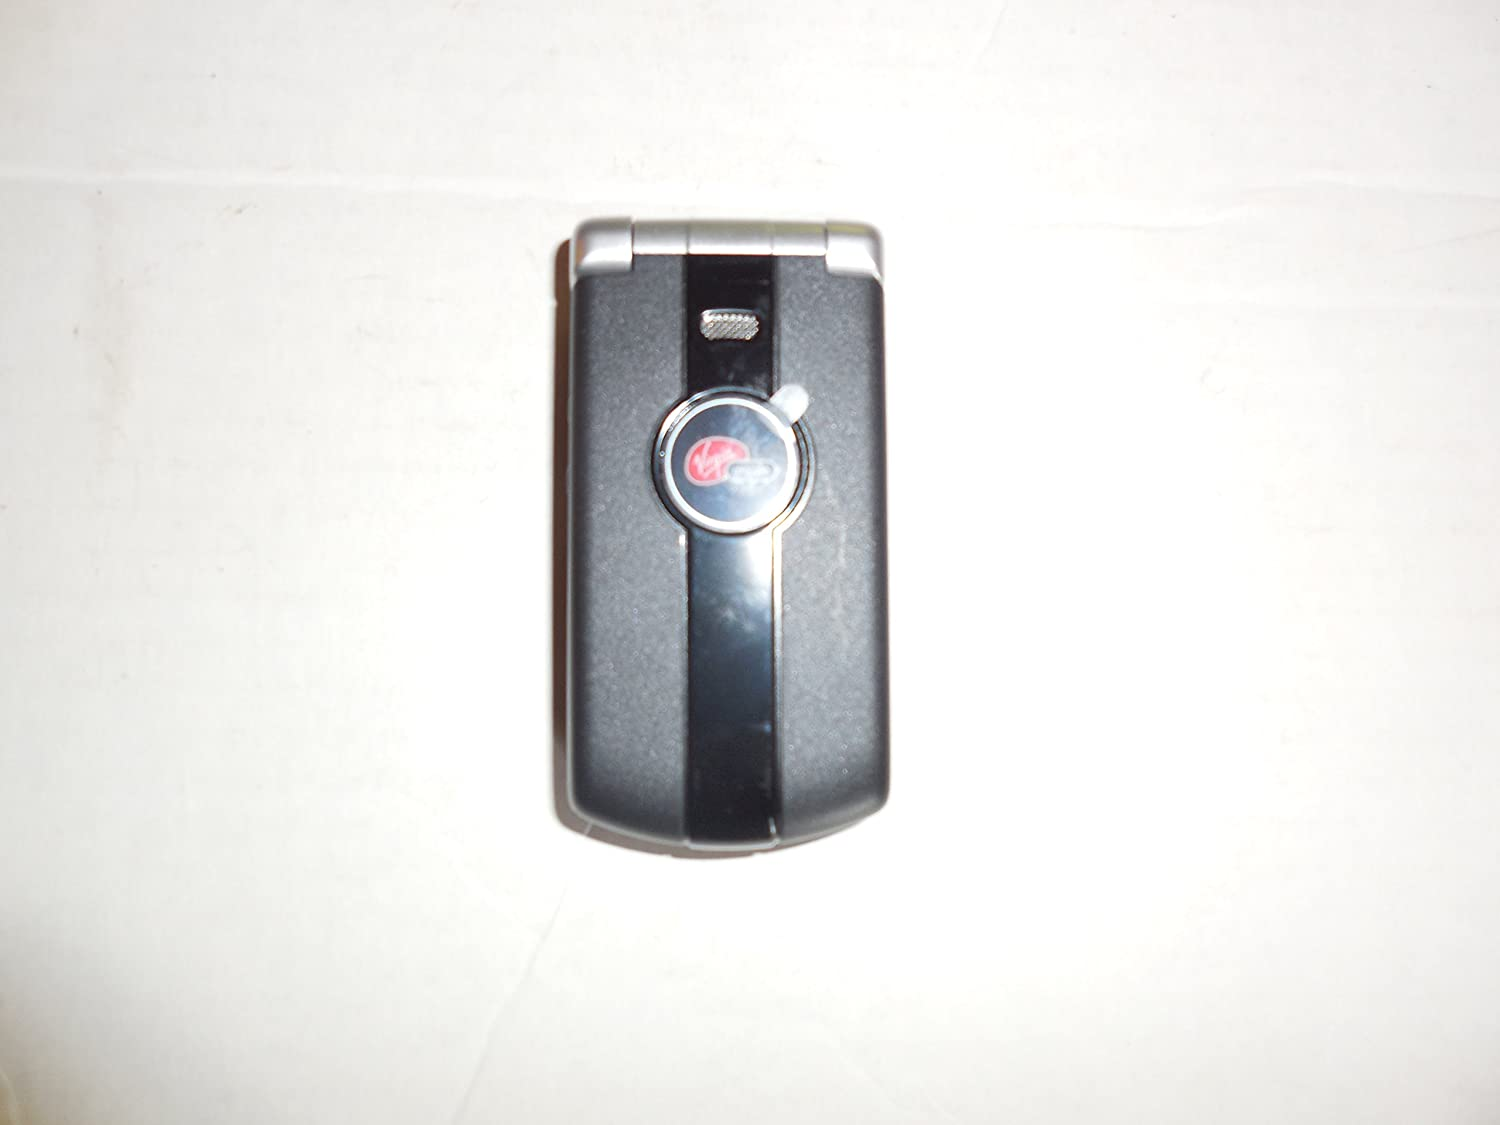 B000NP82G6 Kyocera Marbl K127 (Virgin Mobile) Cellular Phone 71MGuRNYNOL.SL1500_